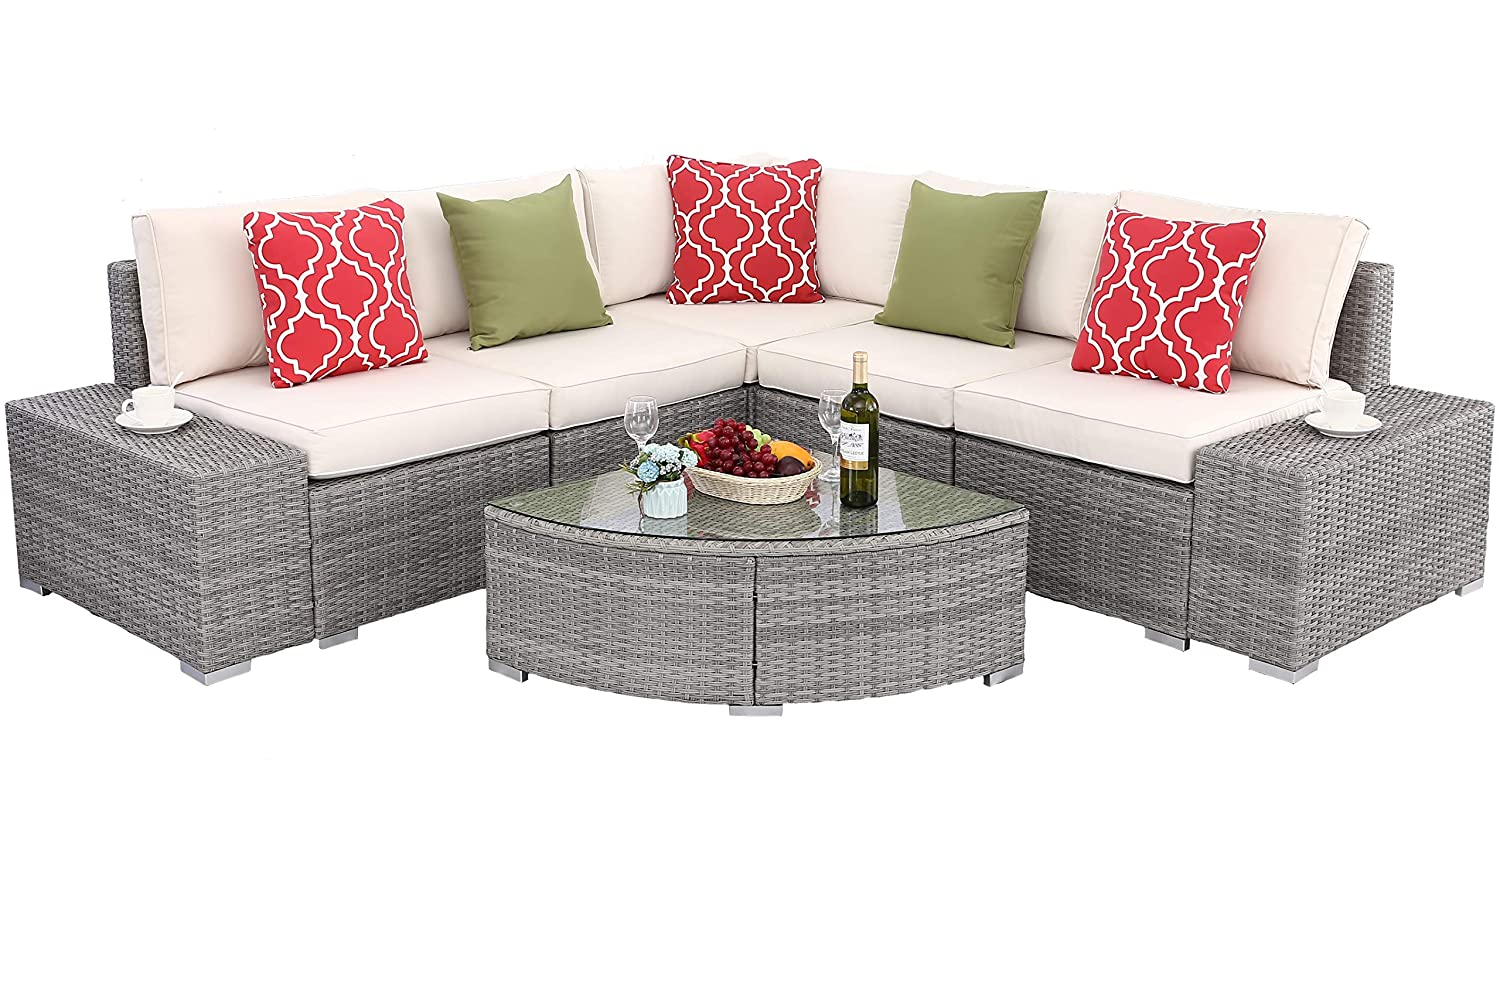 Do4U 6 PCs Outdoor Patio PE Rattan Wicker Sofa Sectional Furniture Set Conversation Set- Thick Seat Cushions Glass Coffee Table Patio, Backyard, Pool Steel Frame Beige